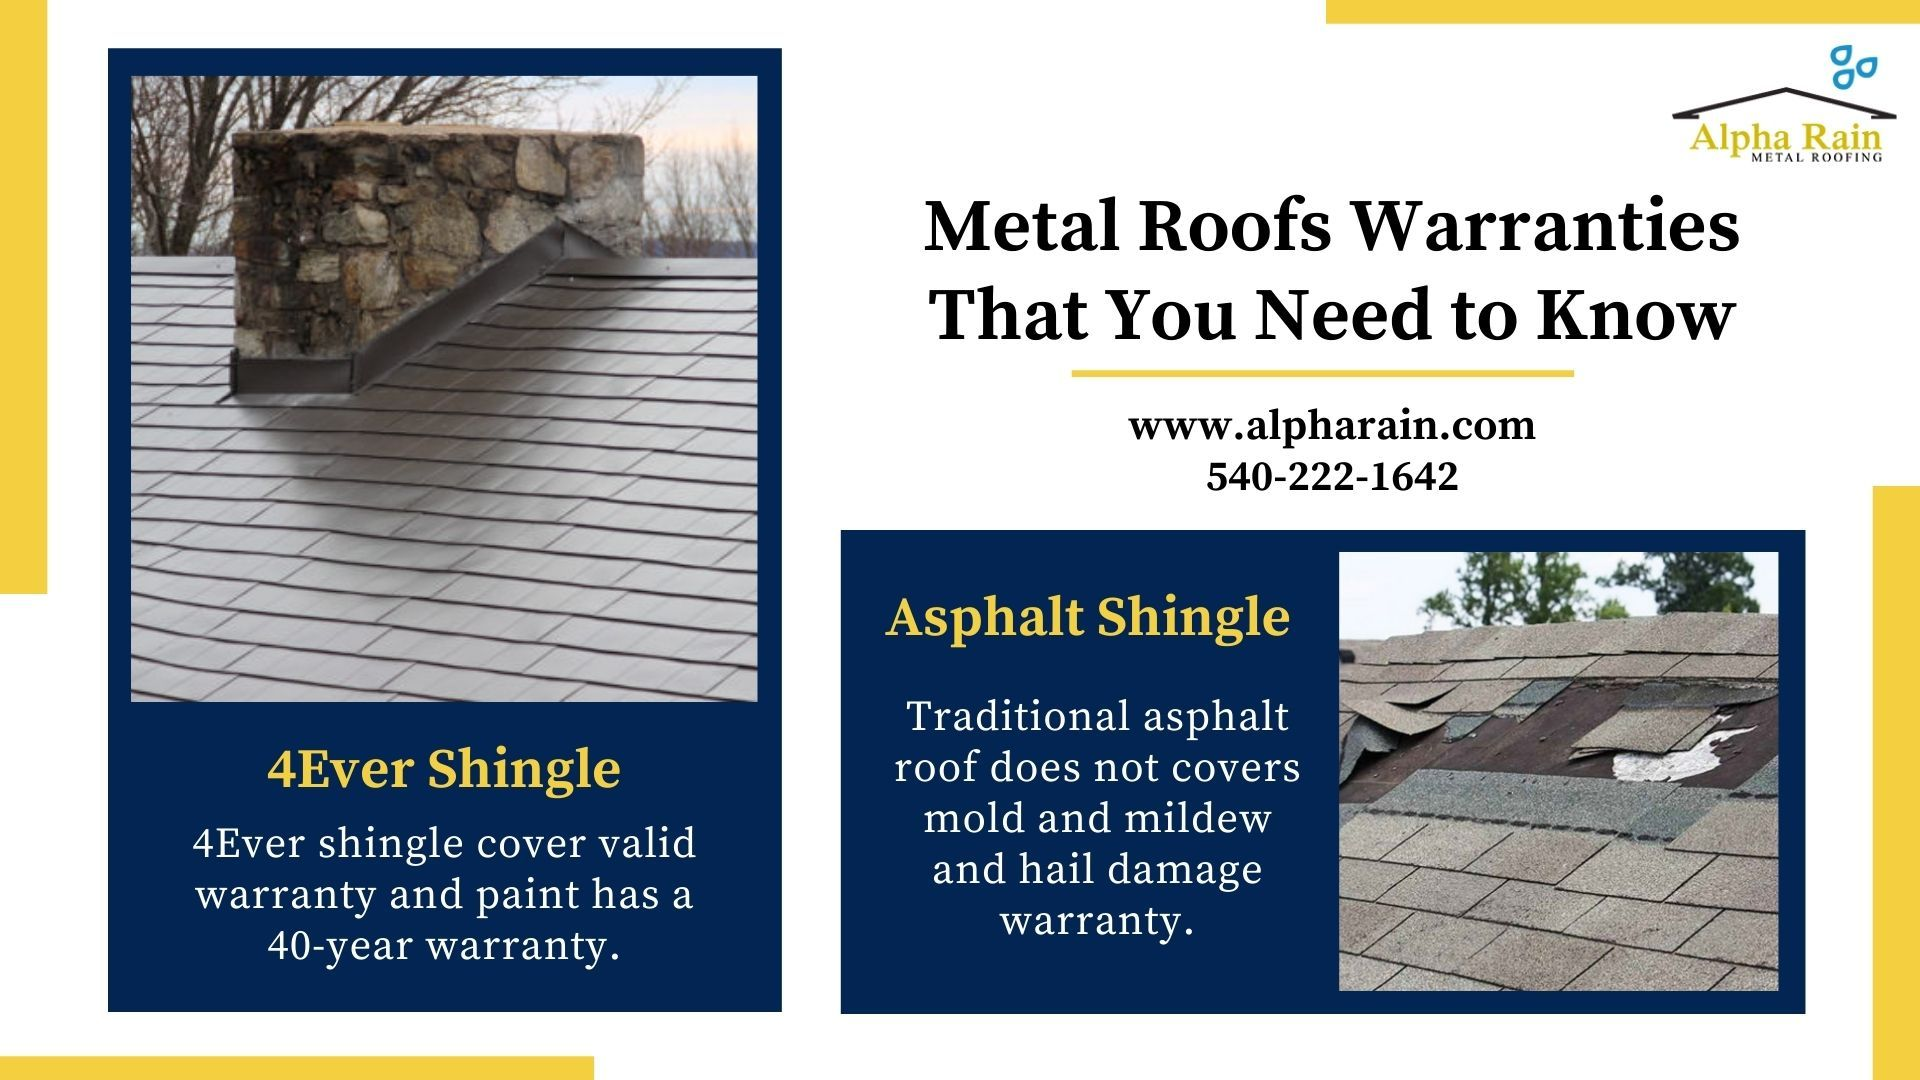 Roof Warranties Offered With Asphalt Shingles Metal Roofs In 2020 Metal Roofing Contractors Shingling Metal Shingles